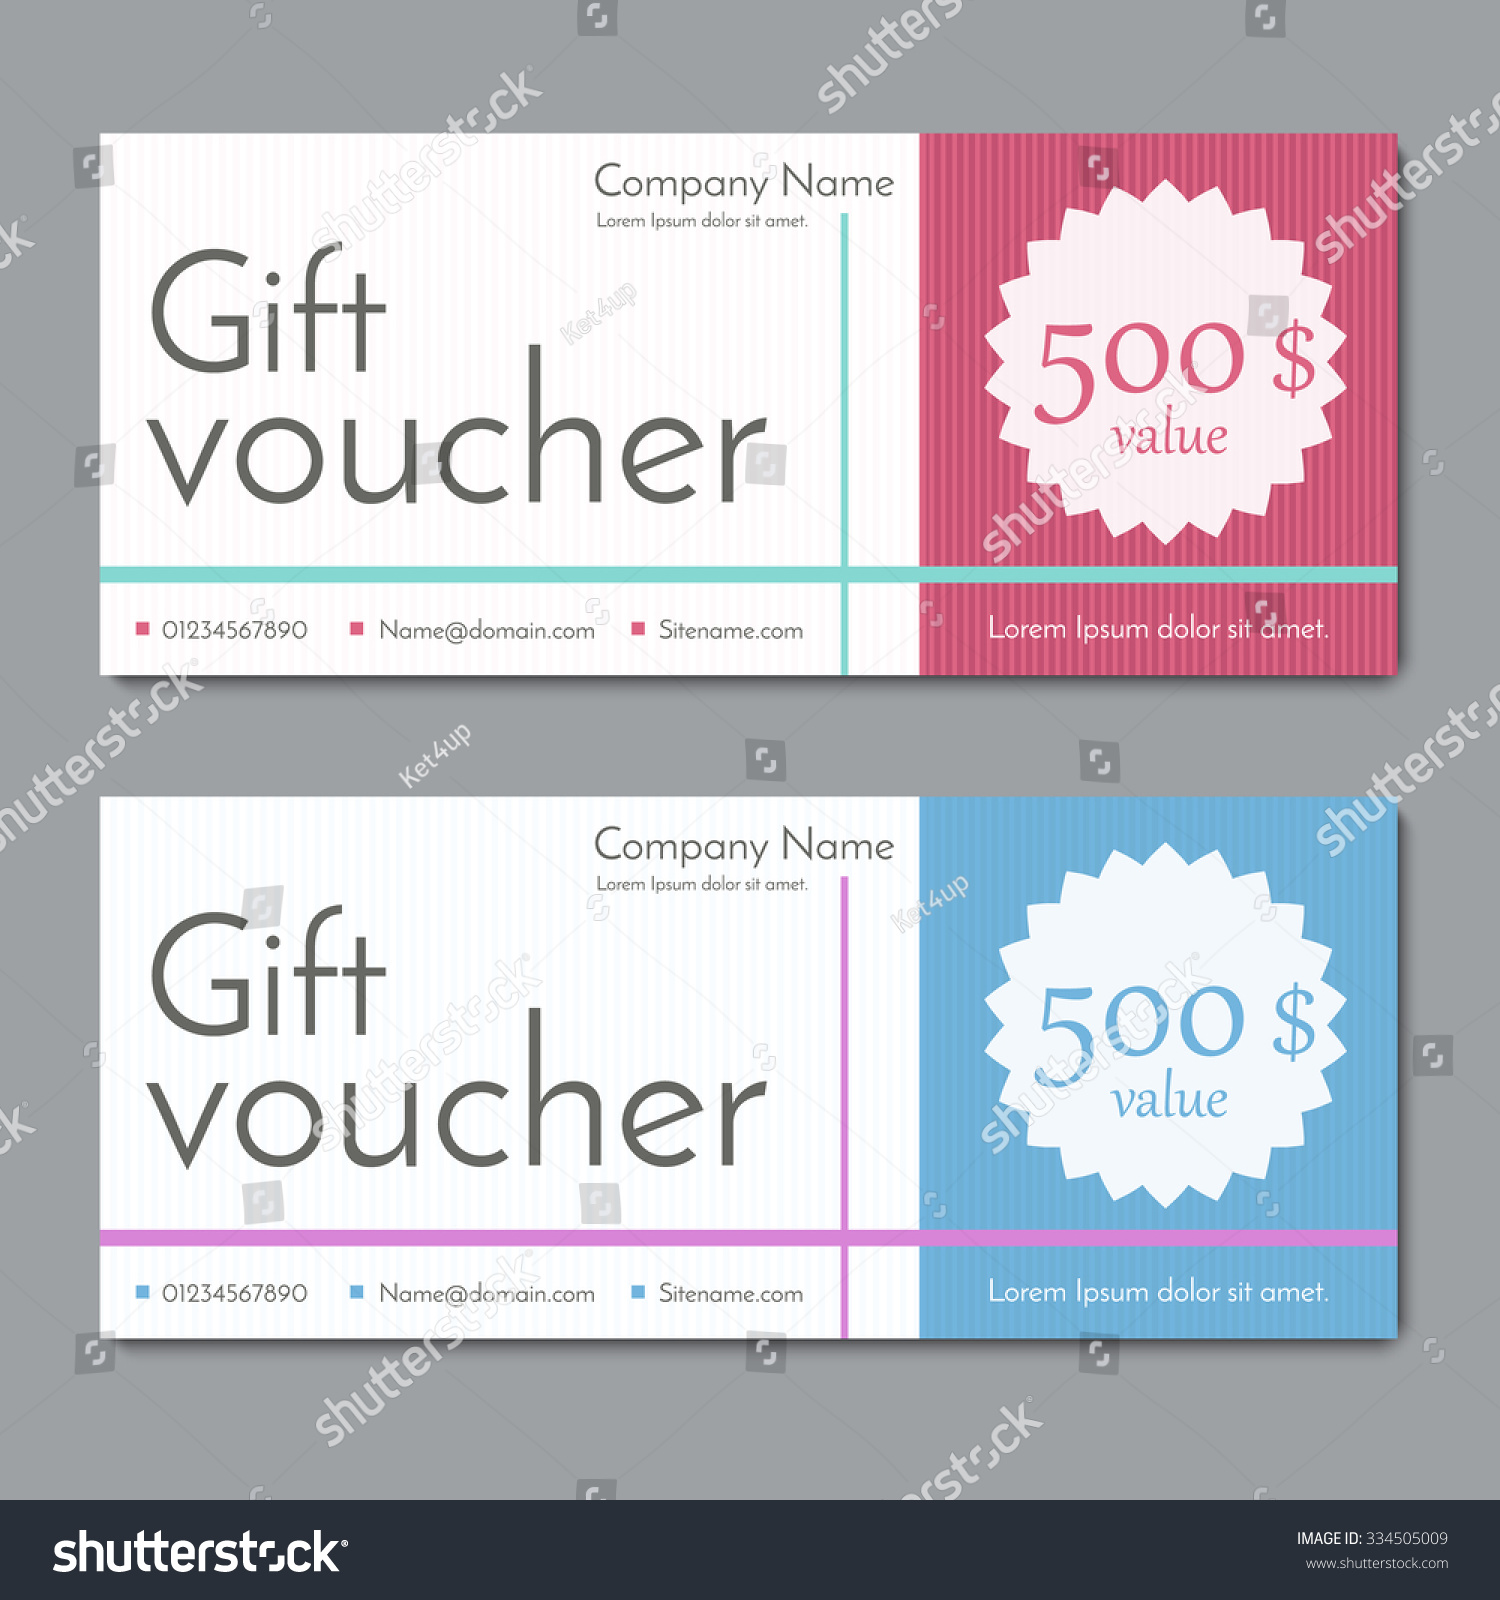 gift voucher examples – Gift Voucher Template Word Free Download